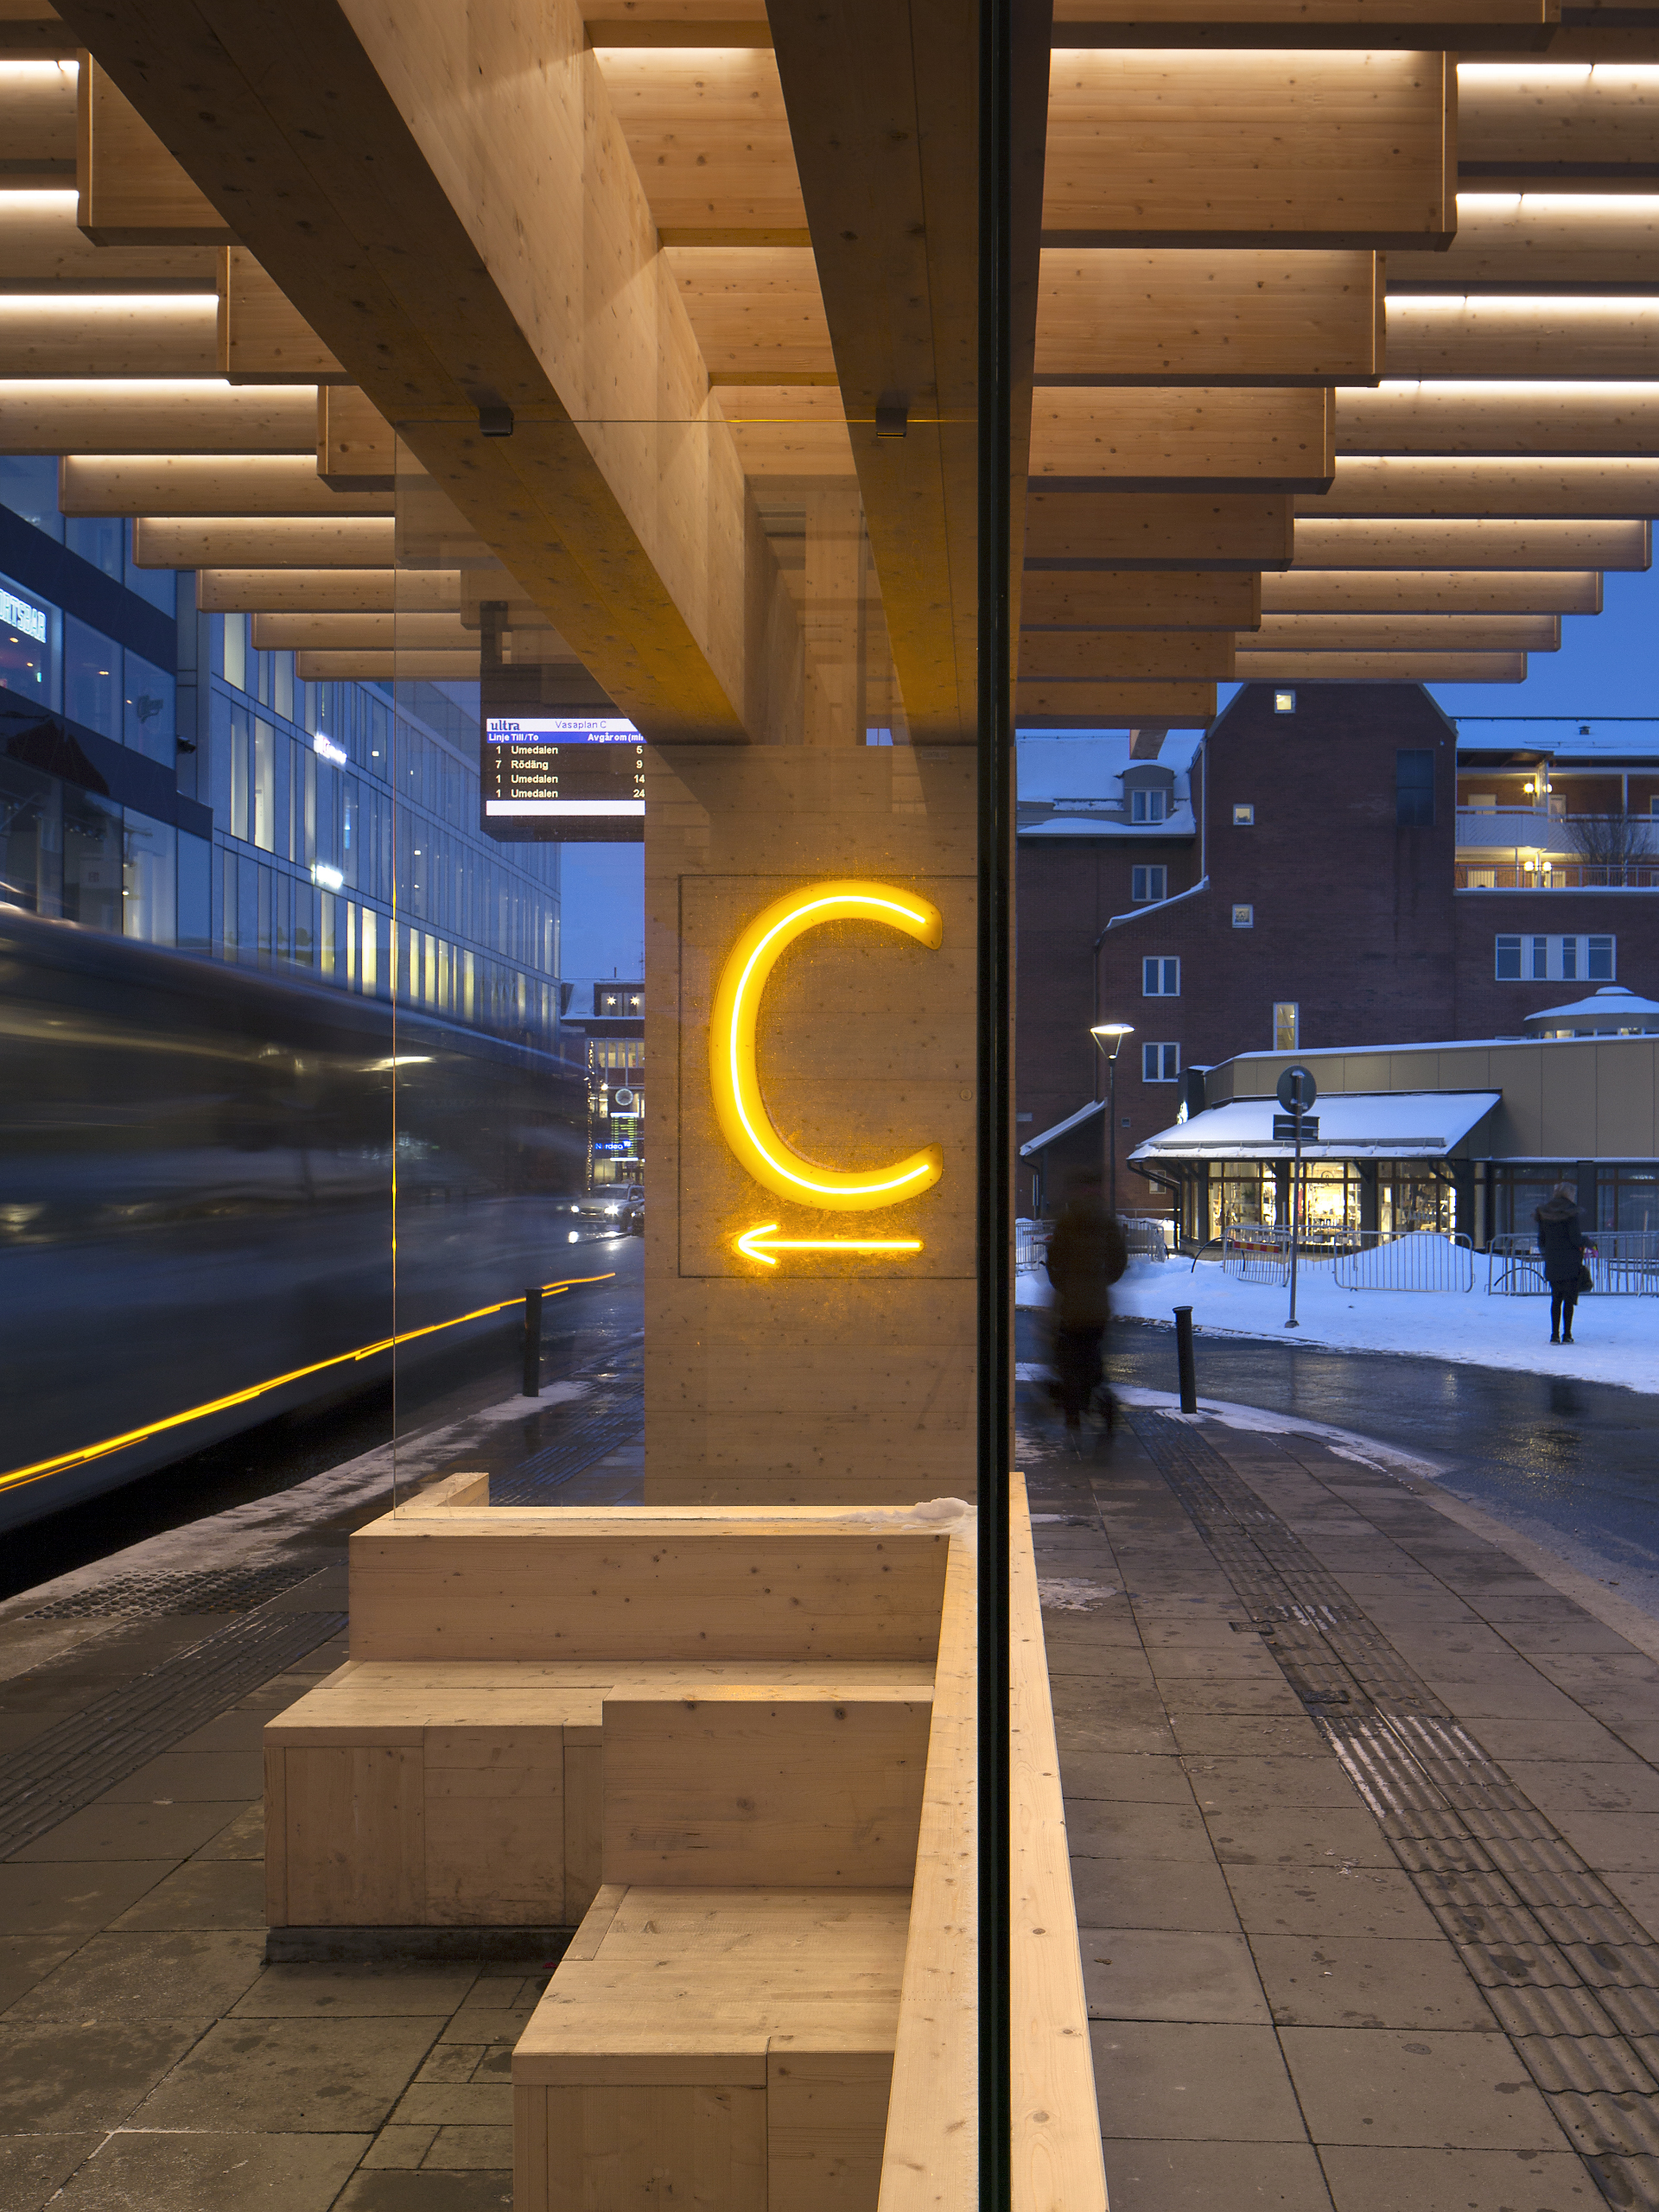 A structure made of concrete and laminated timber for a bus shelter in Umeå, Sweden.